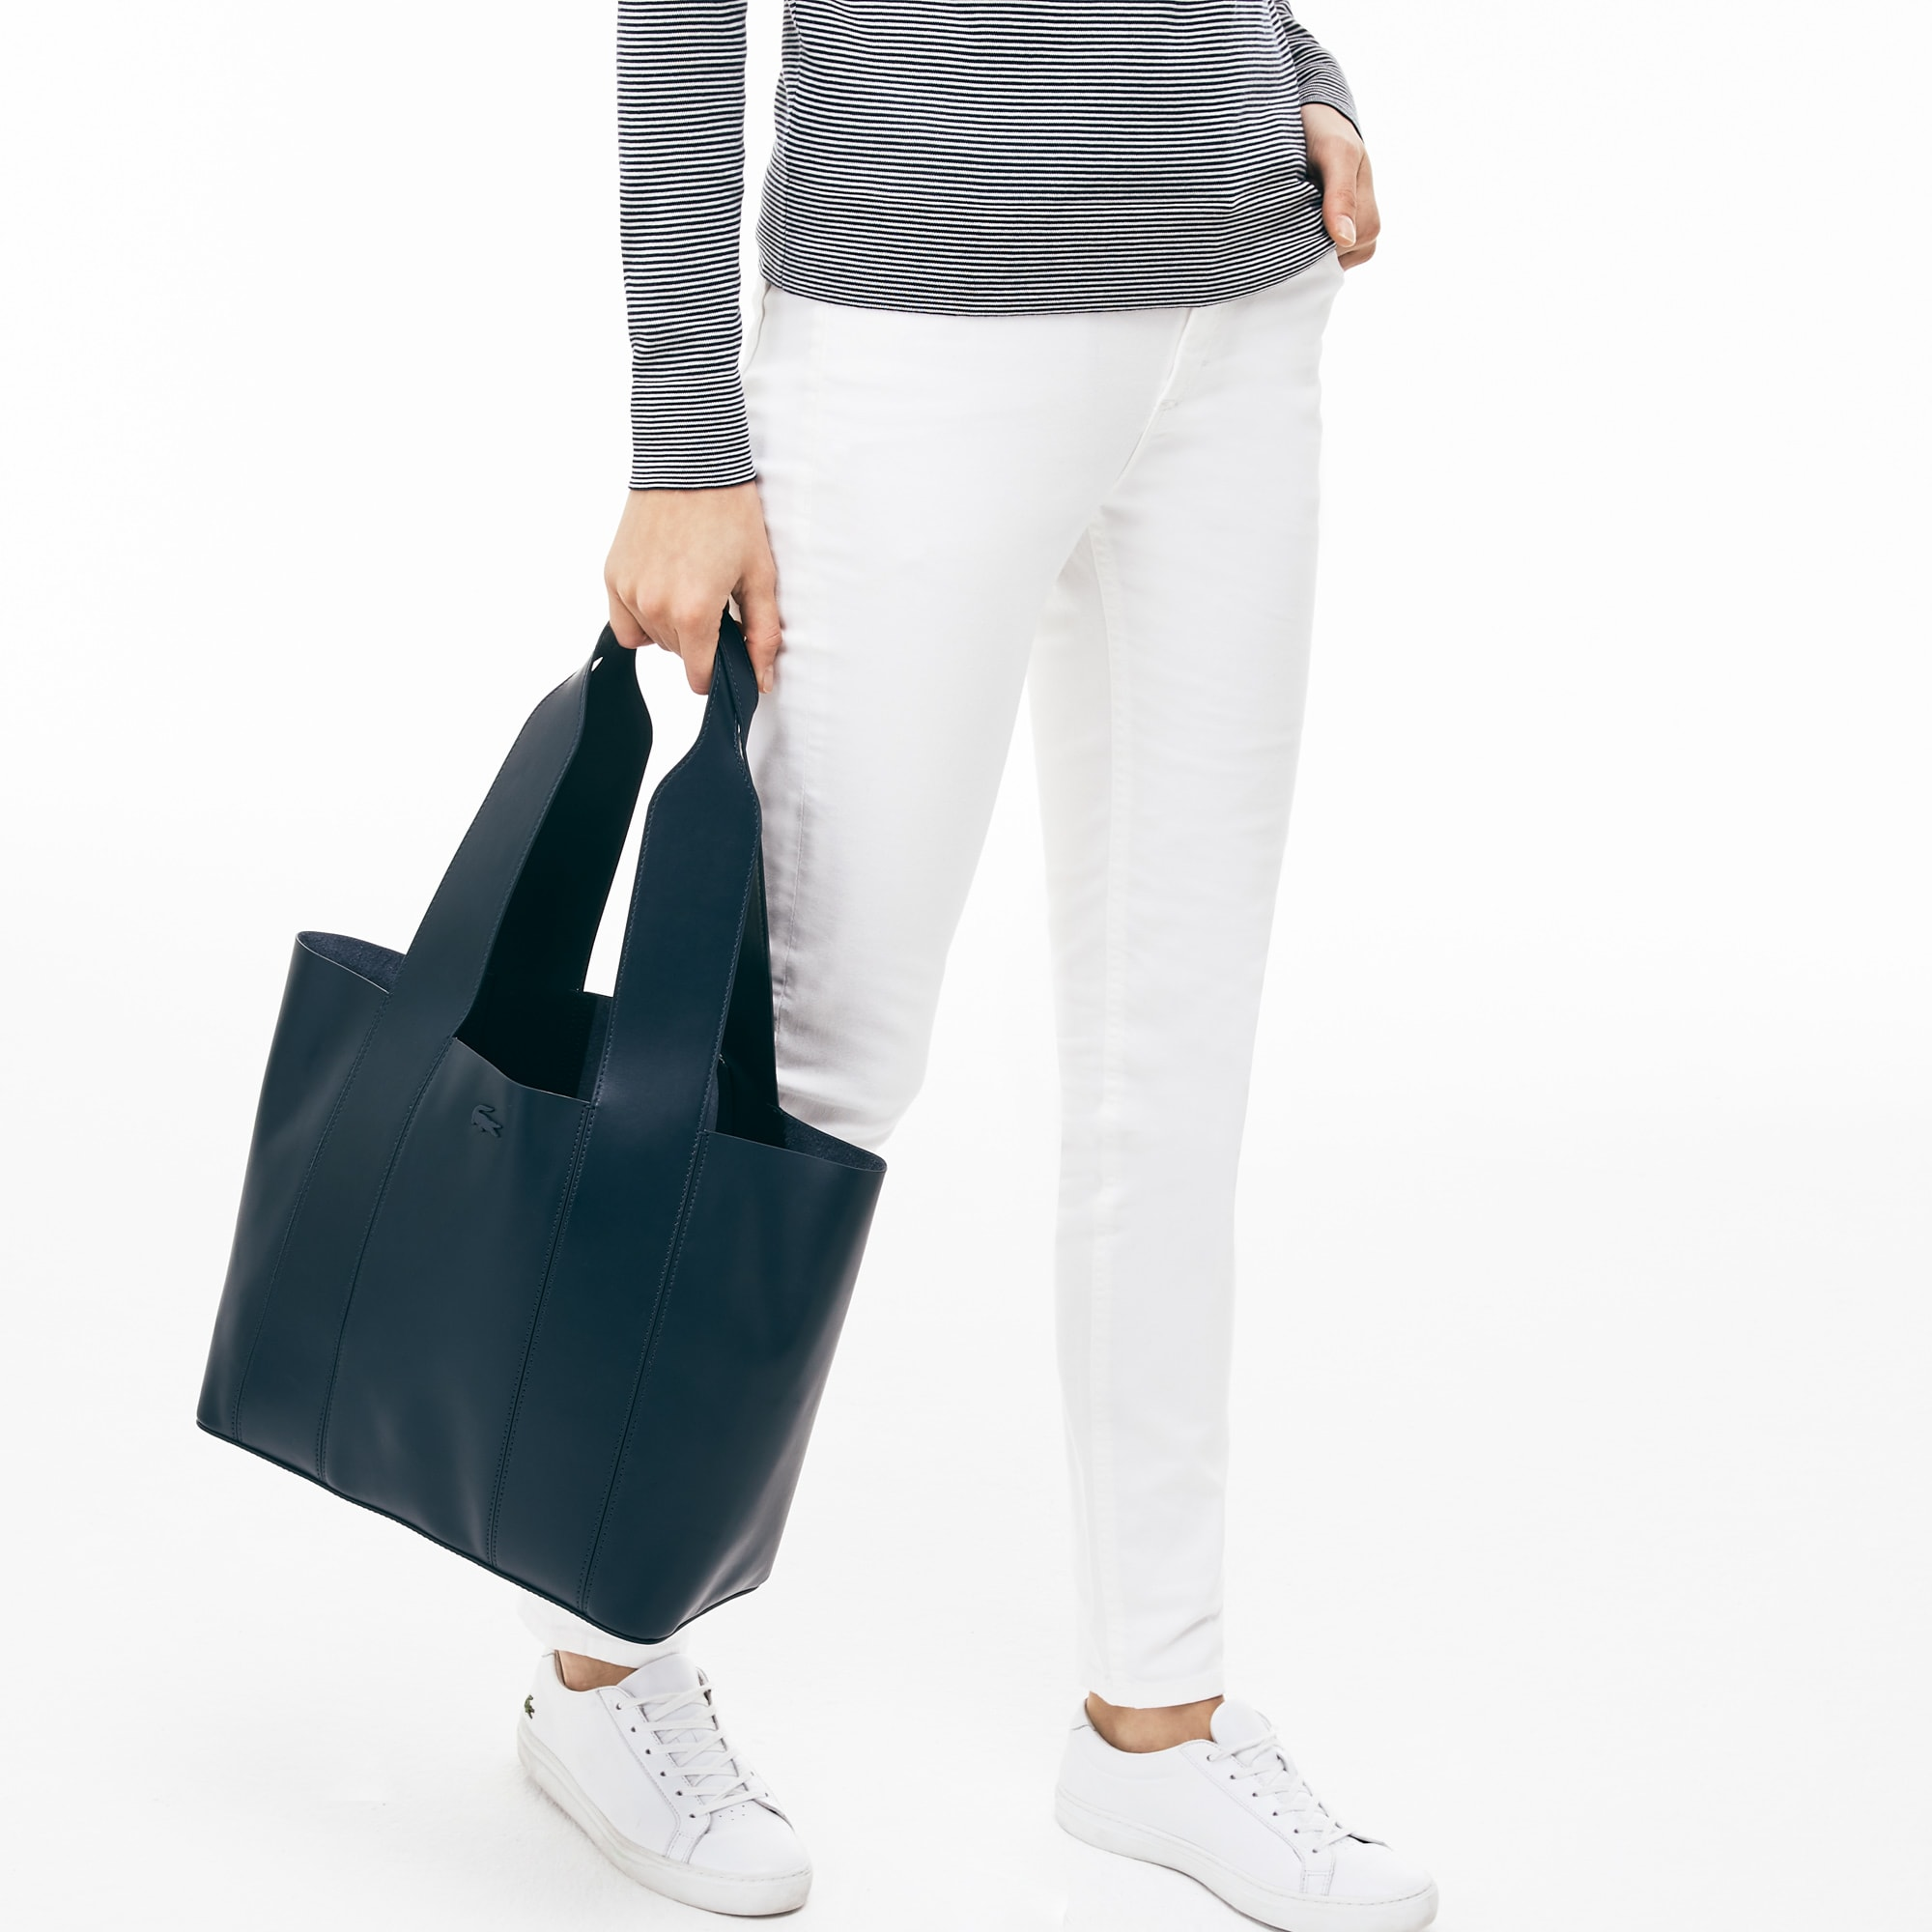 Women's Purity Soft Monochrome Leather Tote Bag